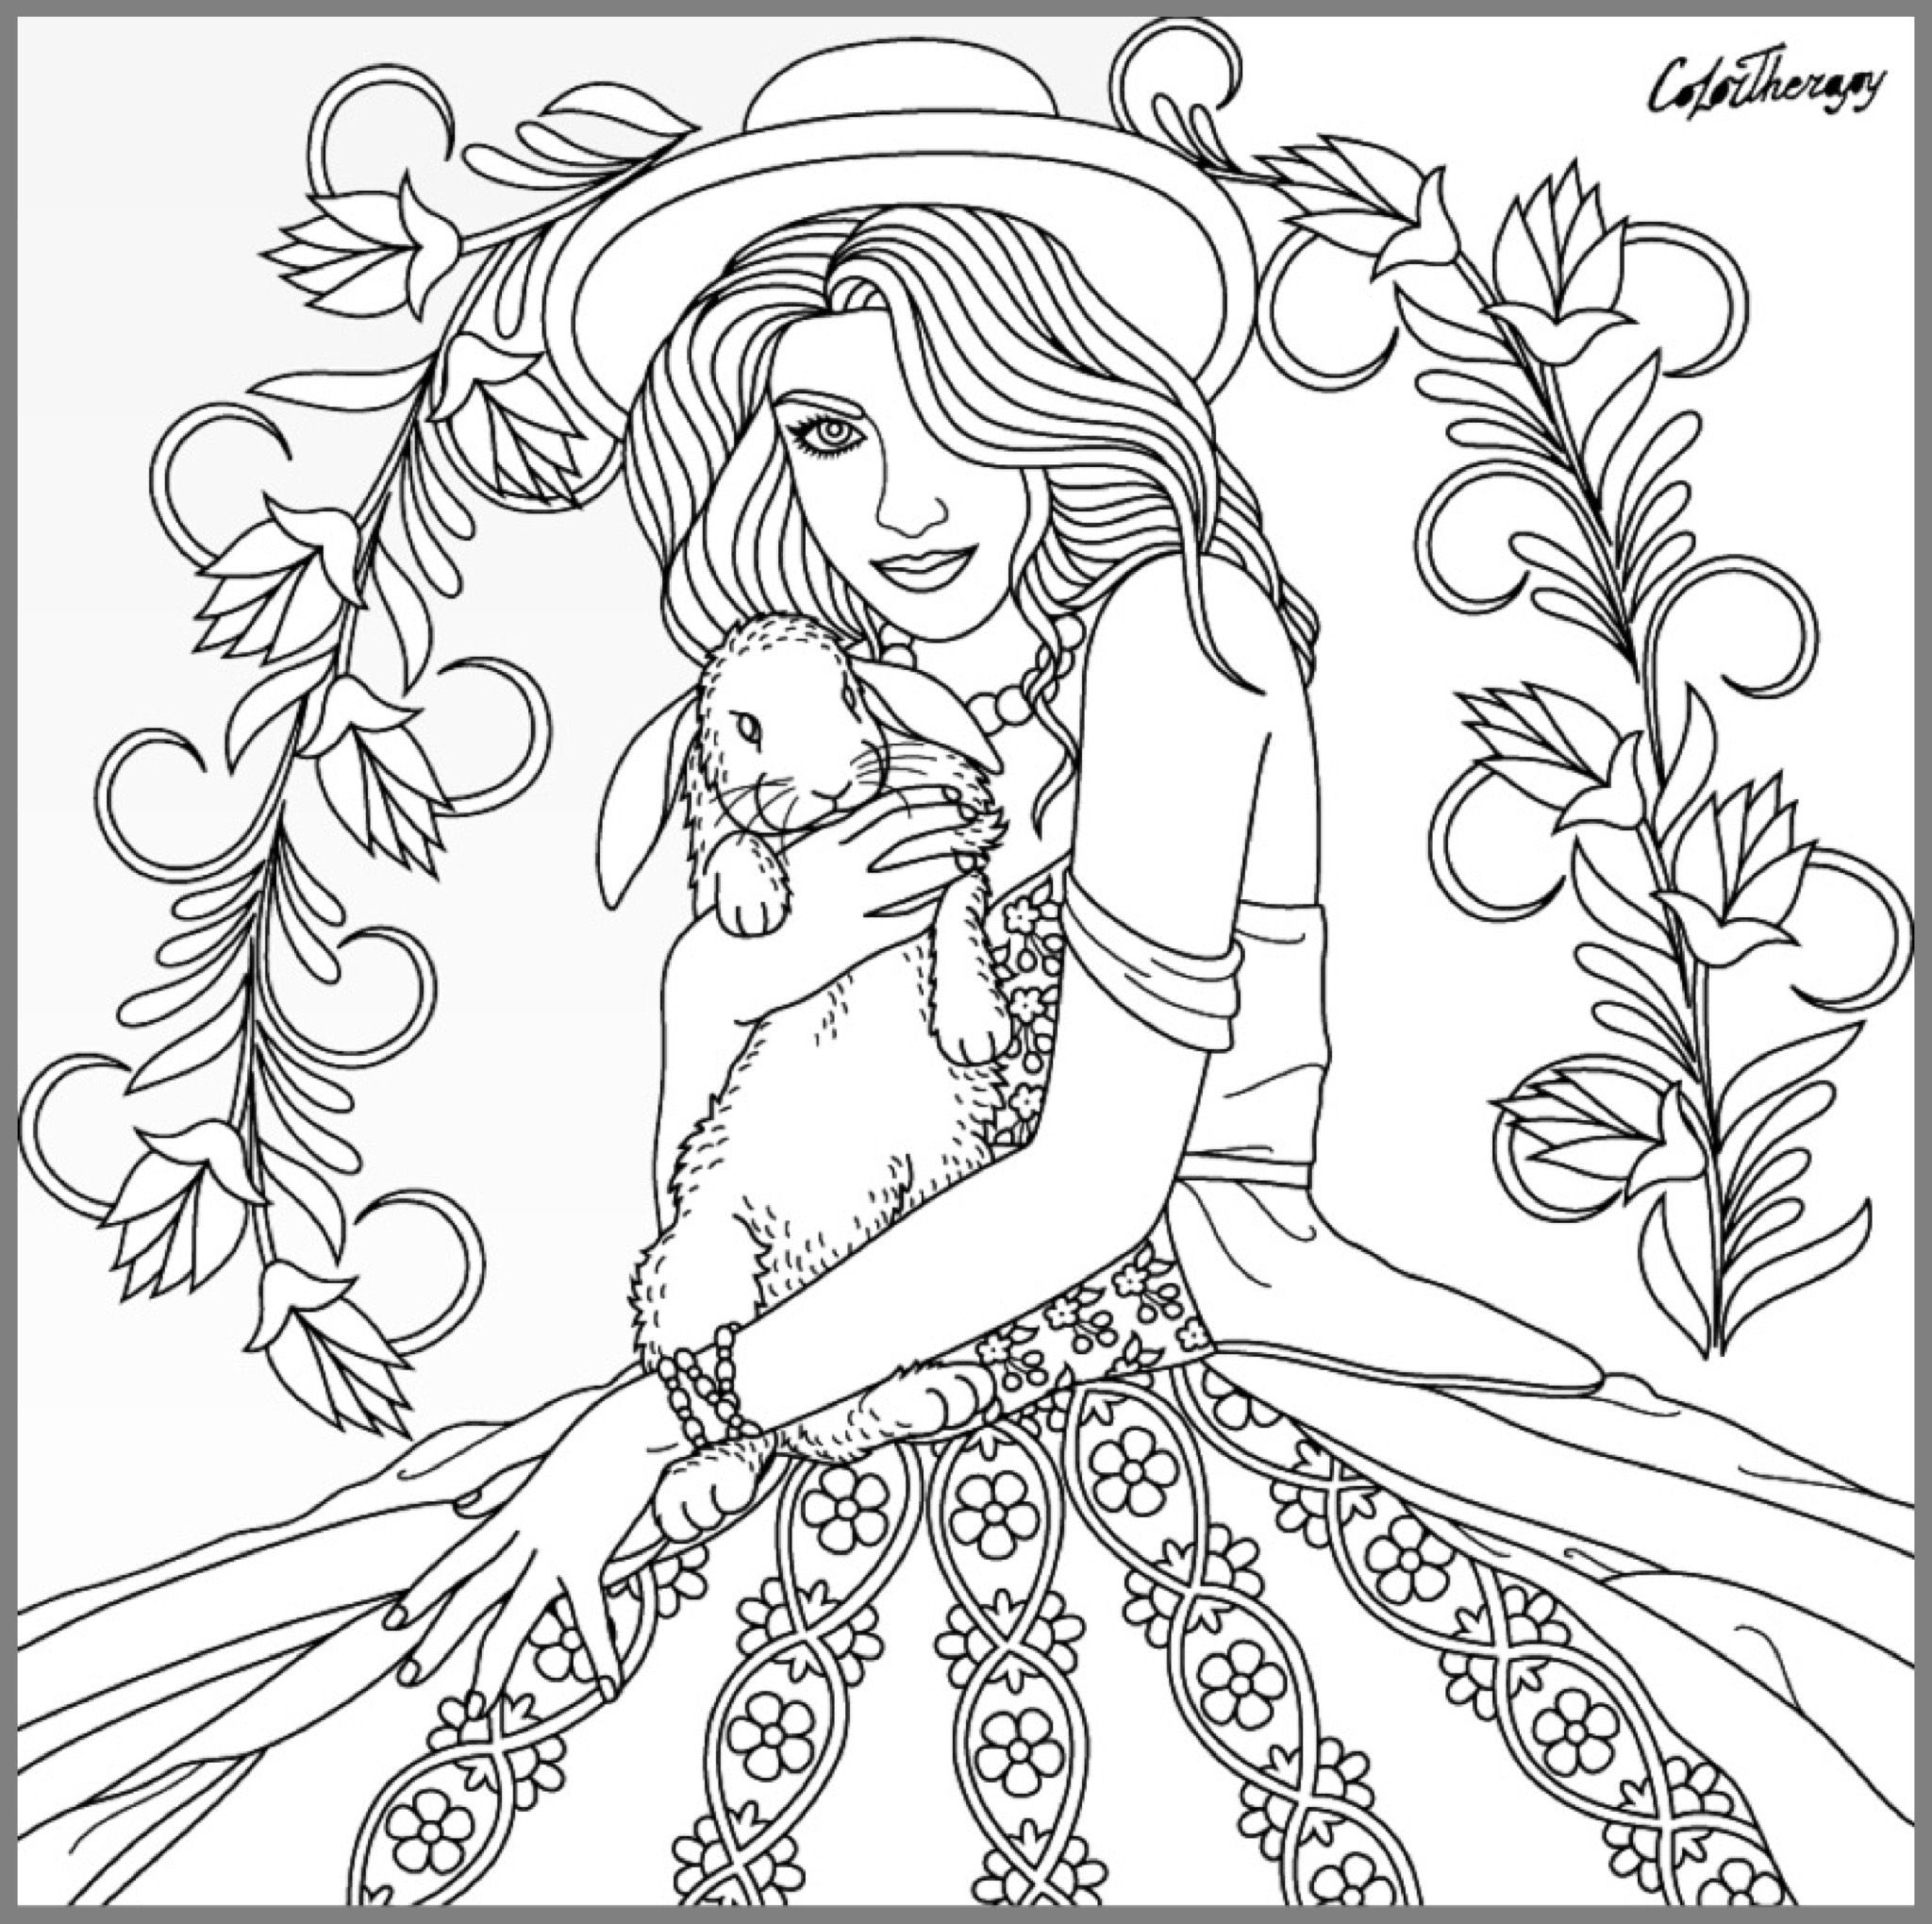 Great Border Idea Mandala Coloring Pages Coloring Book Art Fairy Coloring Pages